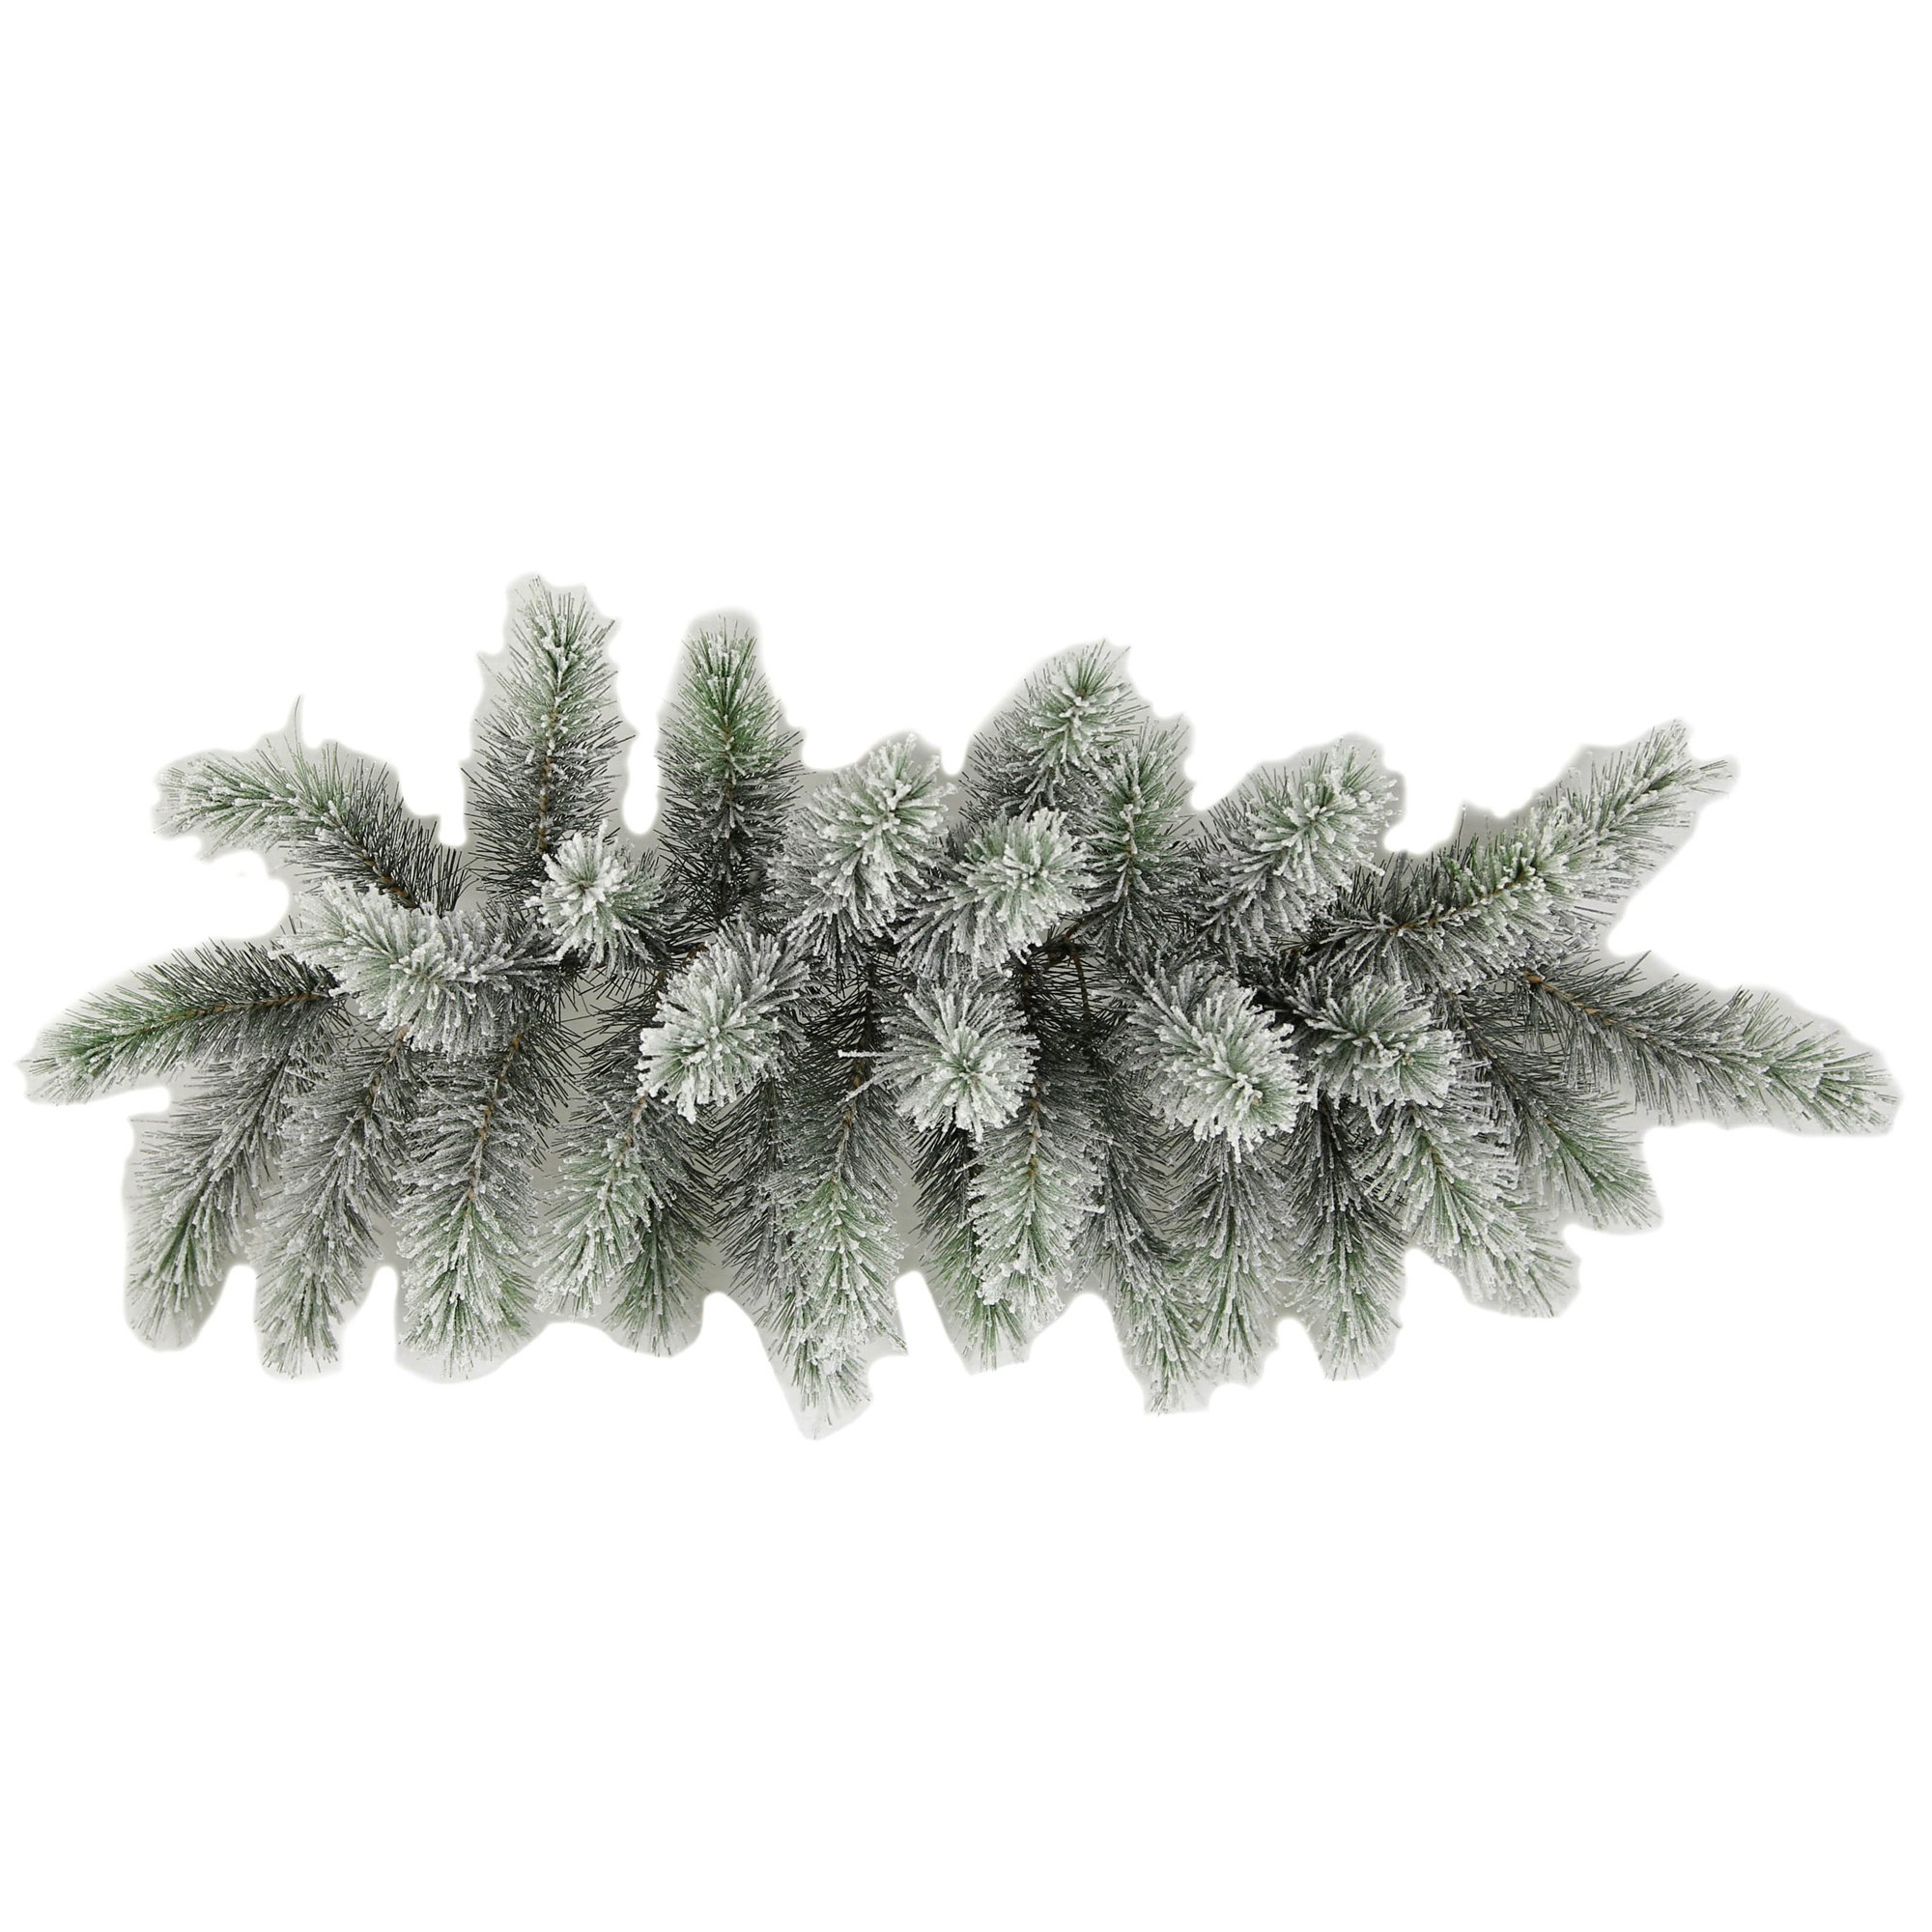 Admired By Nature GXW4914-SNOW 34 Tips Christmas Pine Swag with Frosted Snow Tips